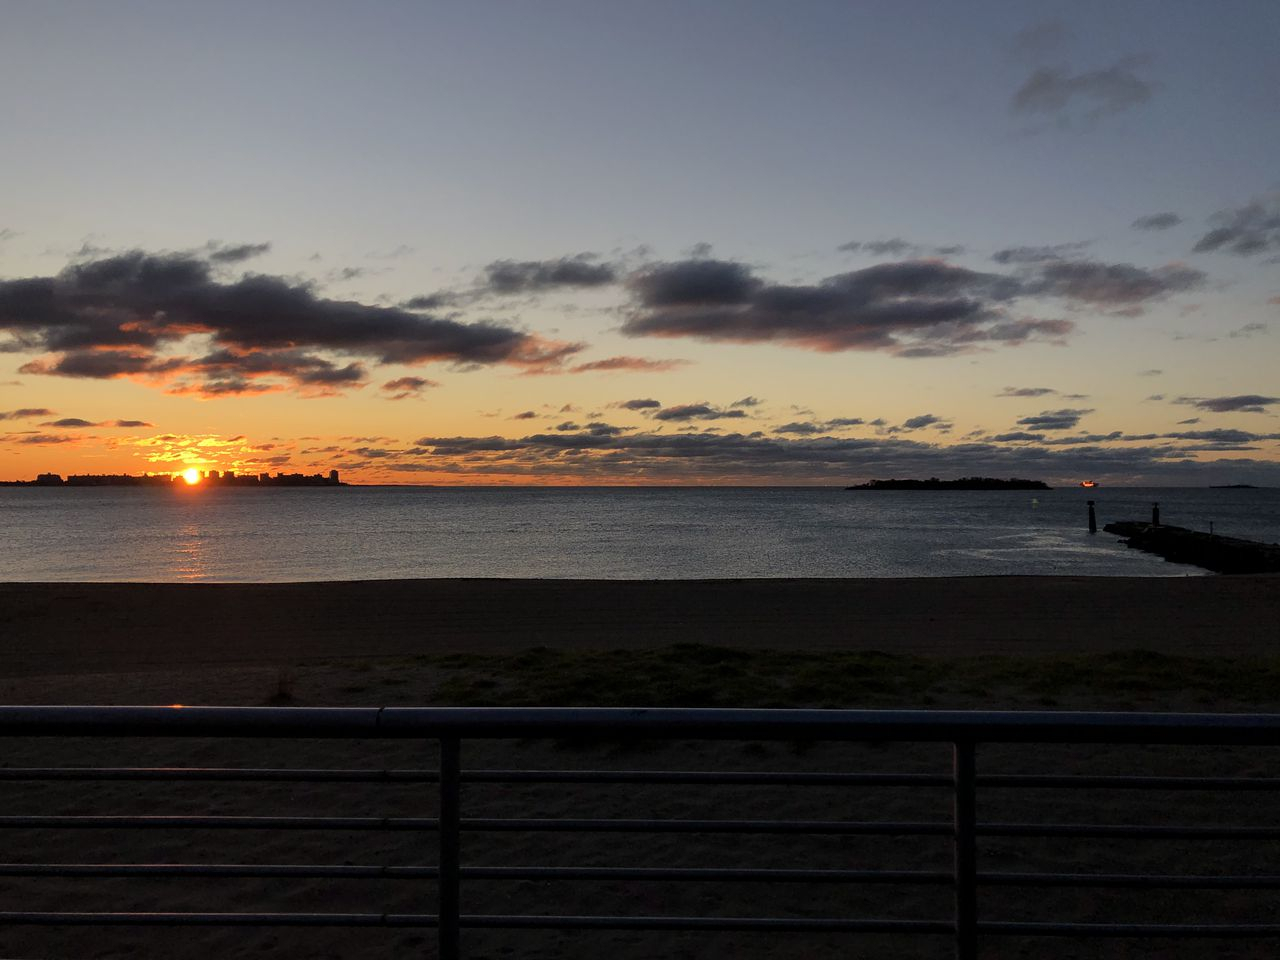 How To Photograph Sunsets & Sunrises Pertaining To Sunset within Sunset Times In Zip Code 12549